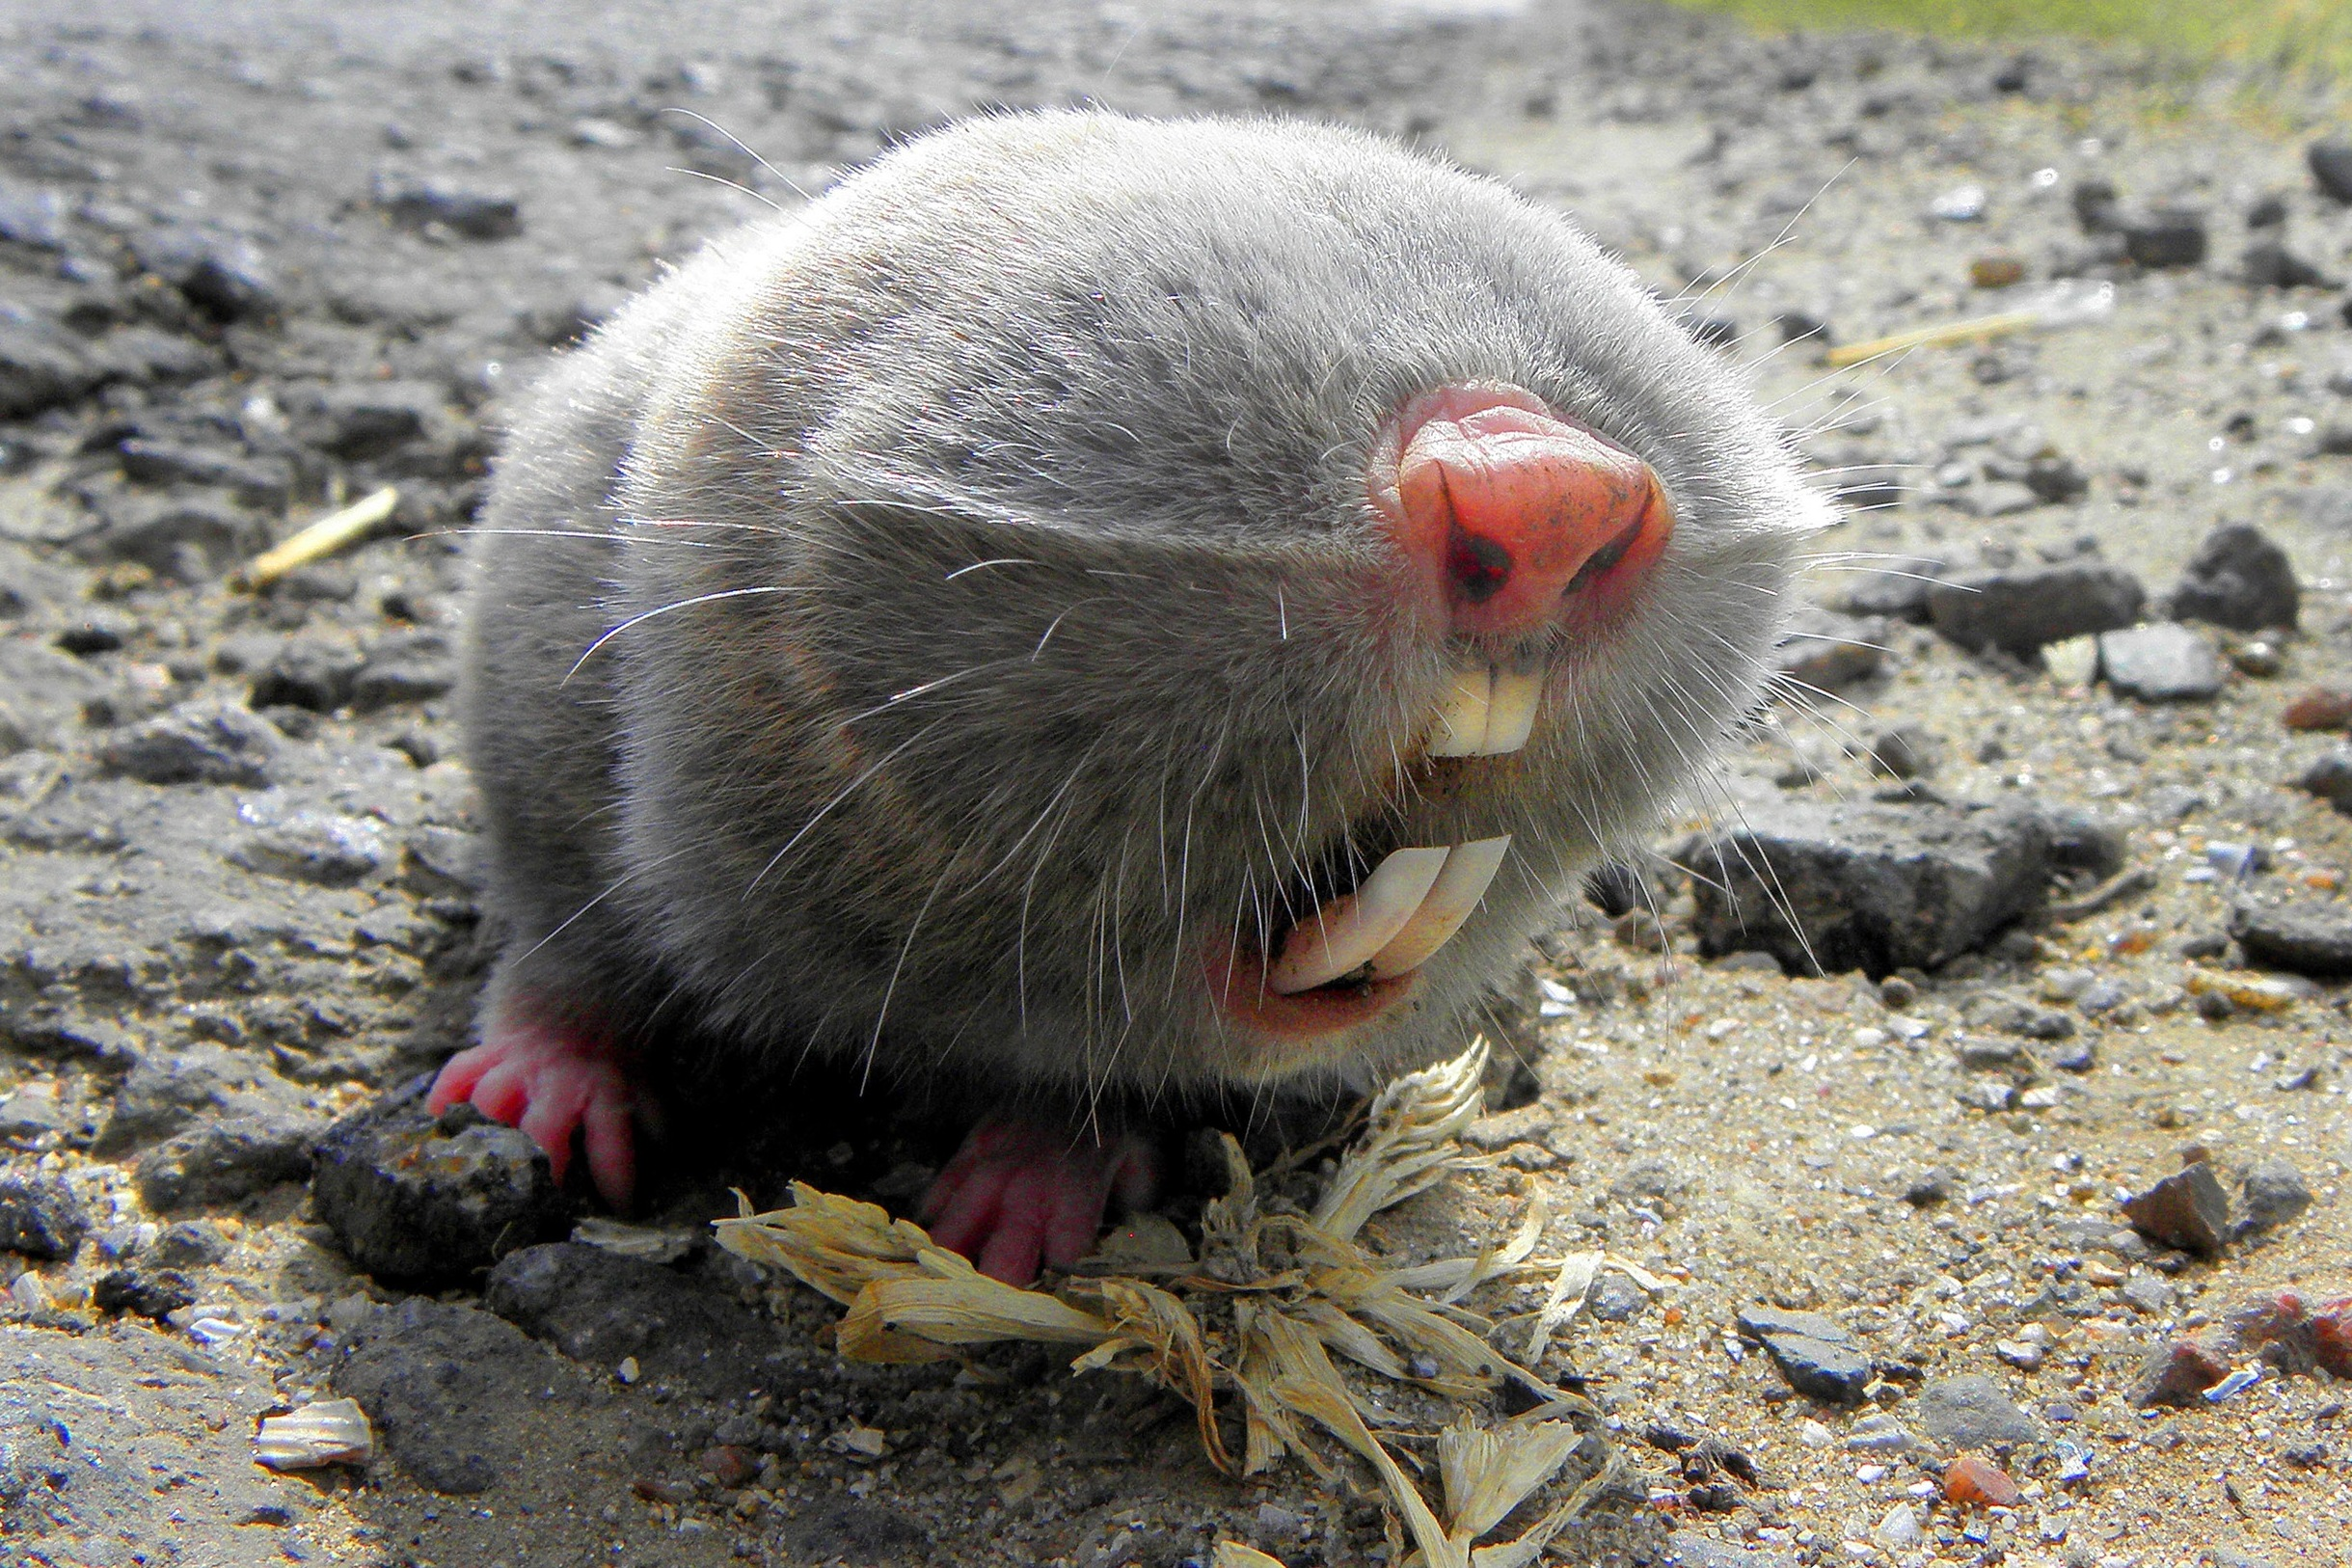 Lesser mole-rat - Wikipedia